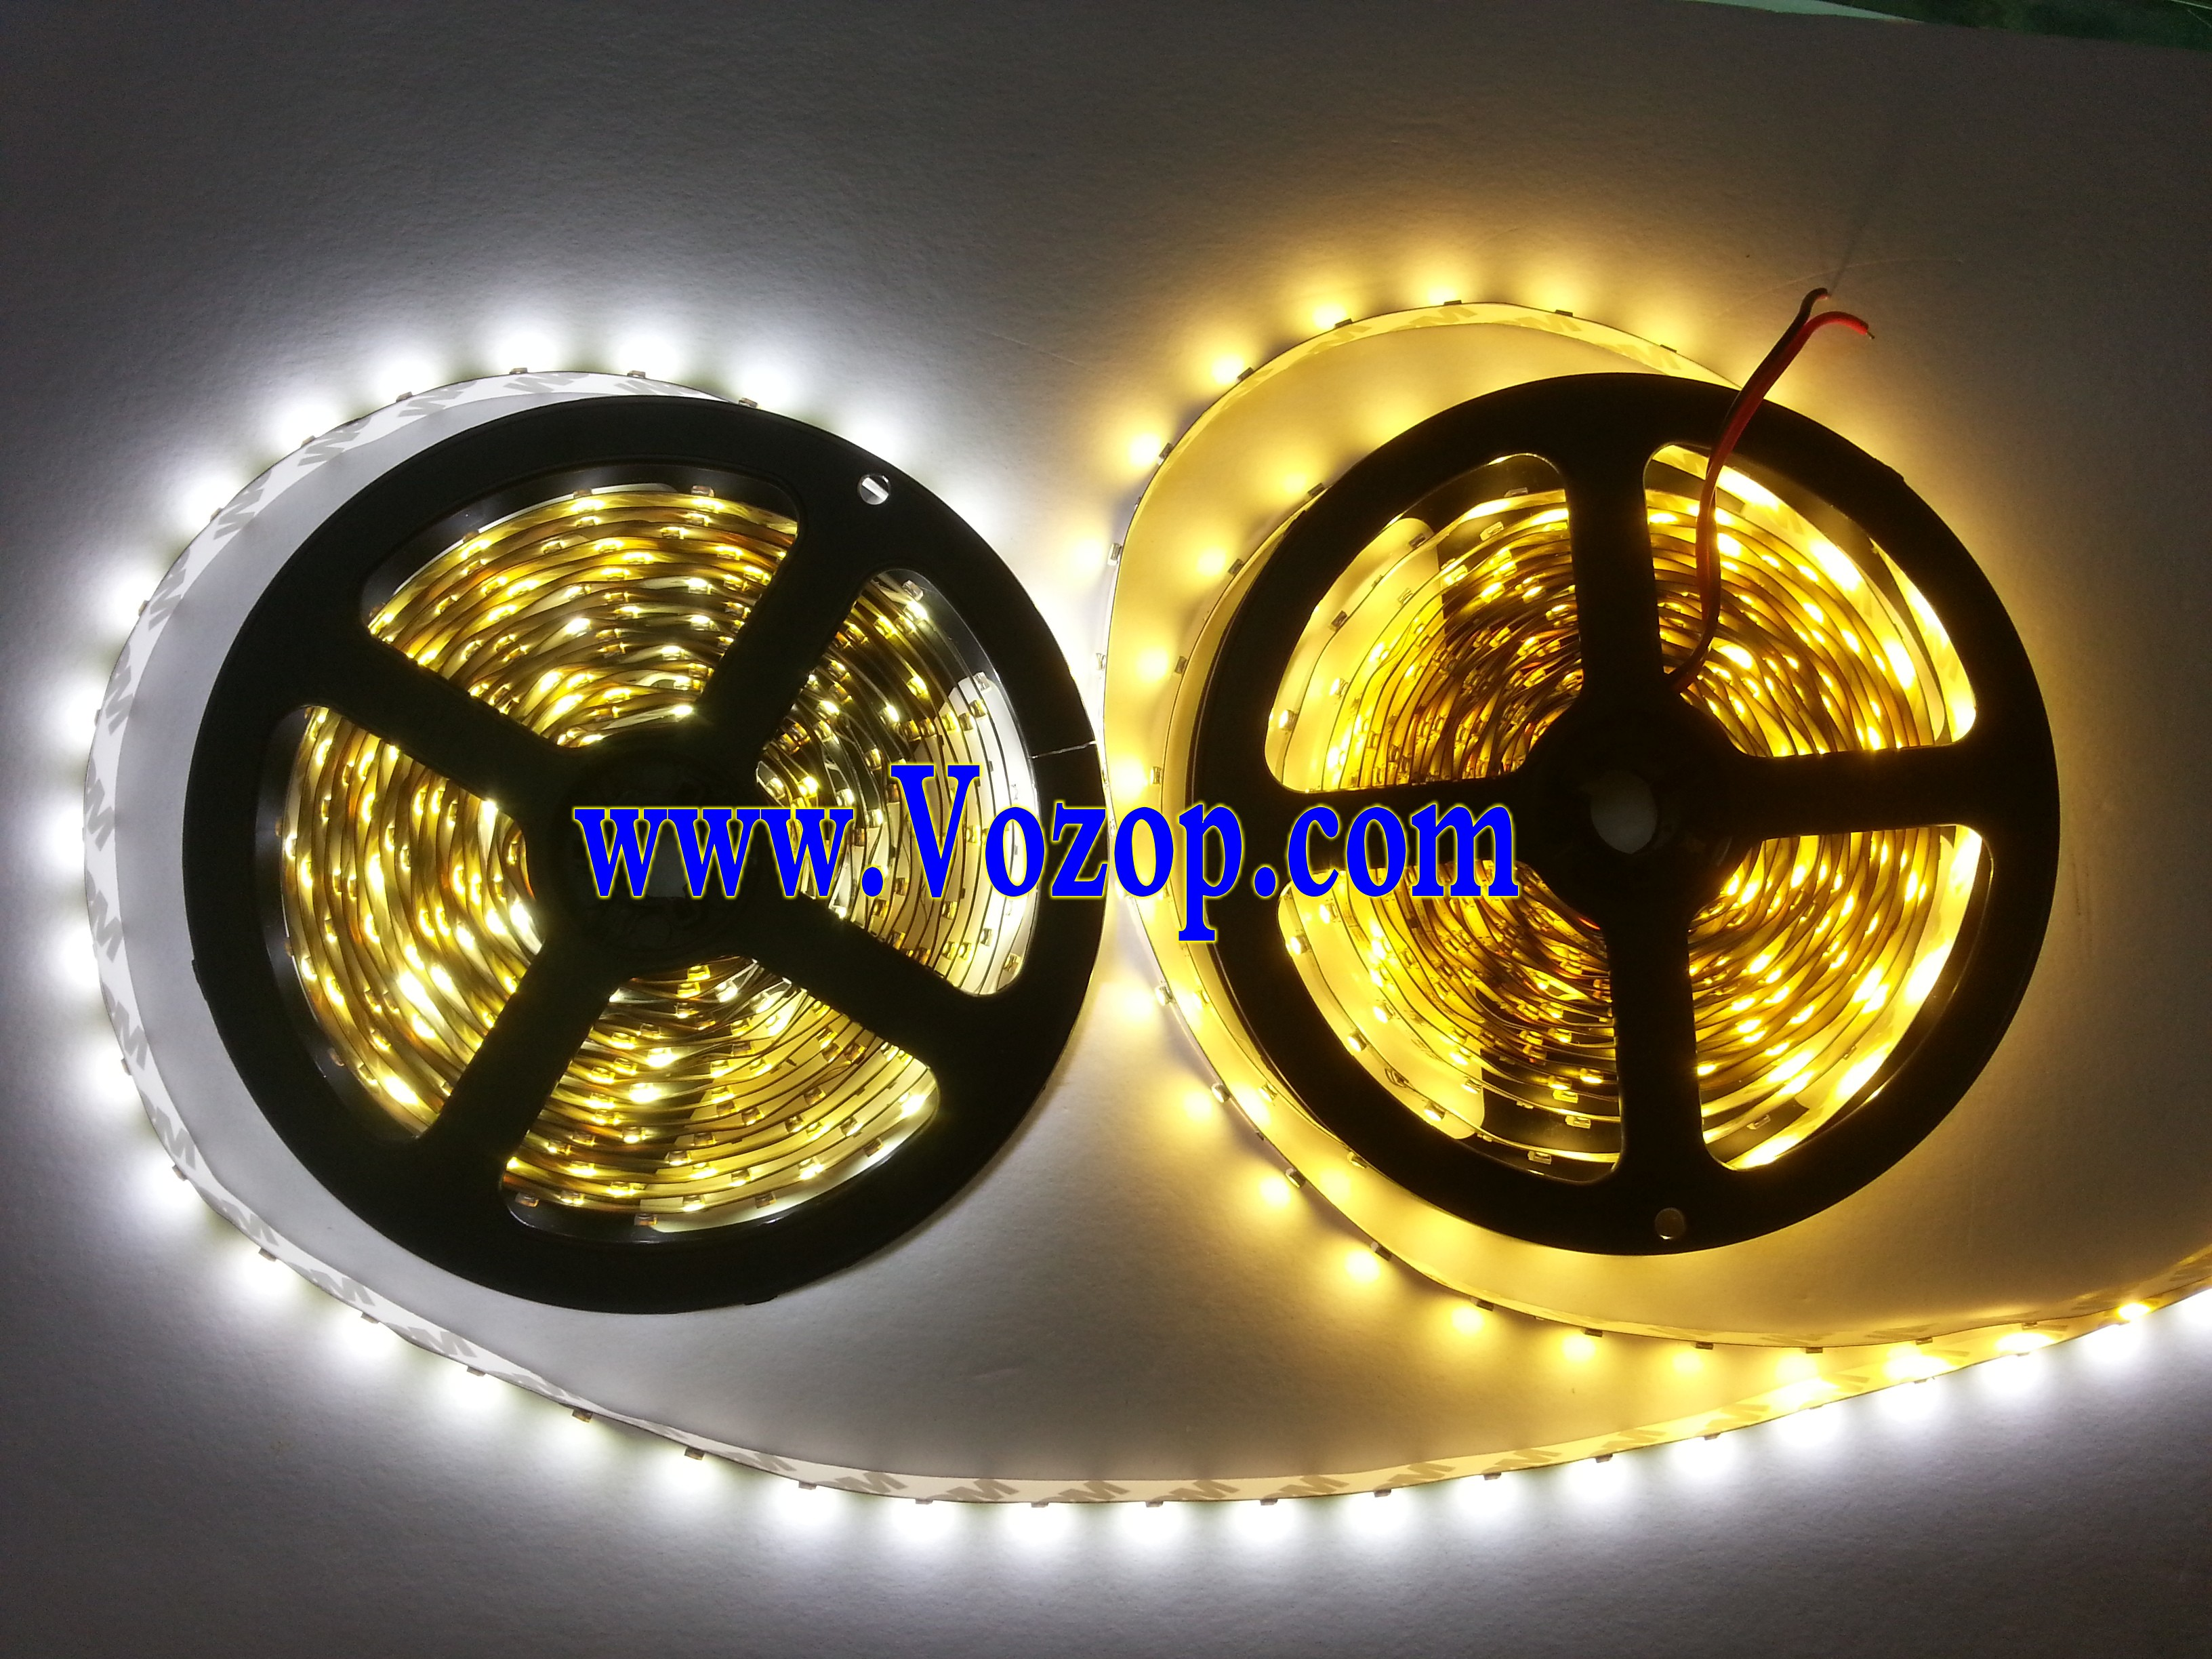 DC_24V_3528_LED_Light_Strip_5M_300_LEDs_Lighting_Tape